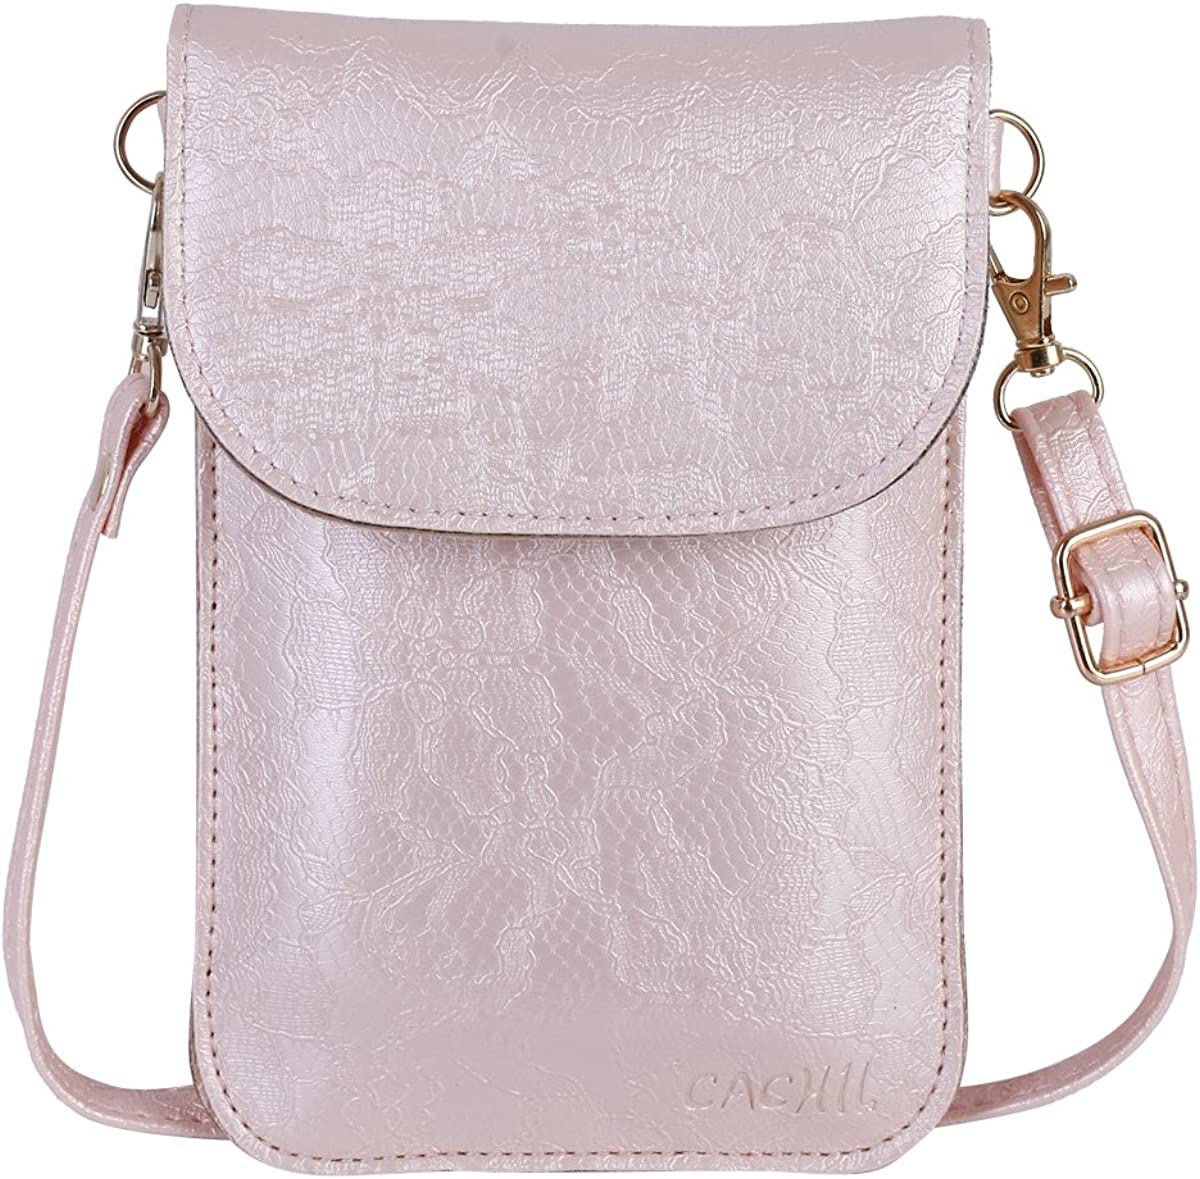 CACHIL small woman bag for phone lace texture leather cellphone holder with touch window